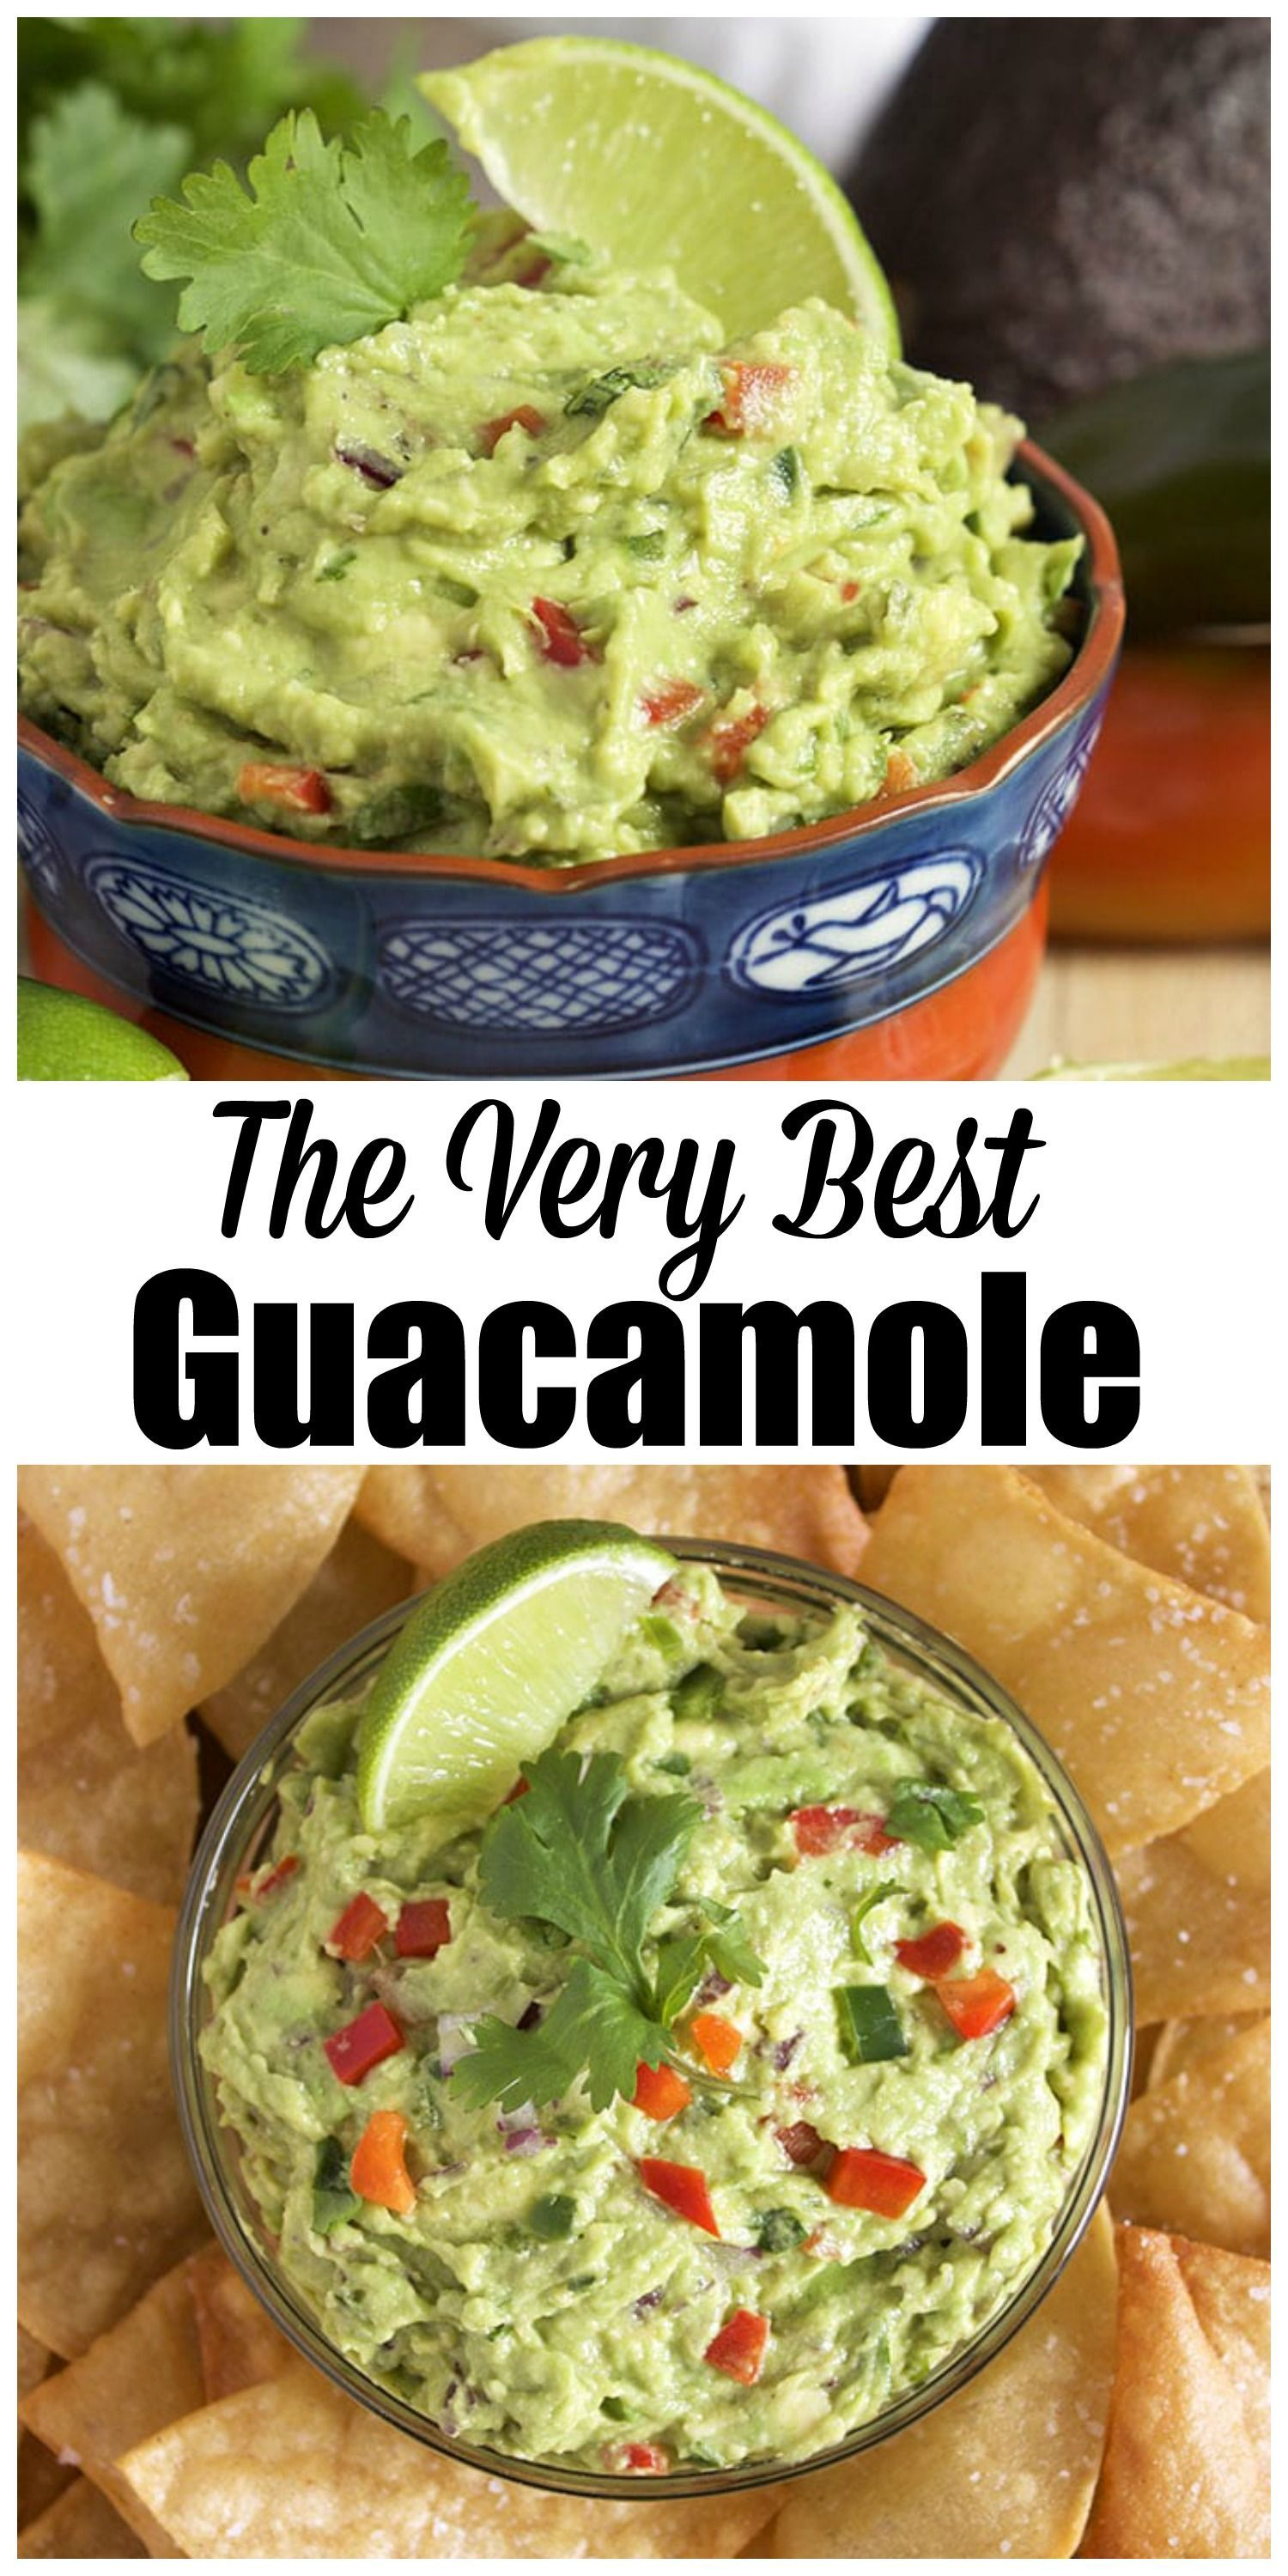 The Very Best Guacamole